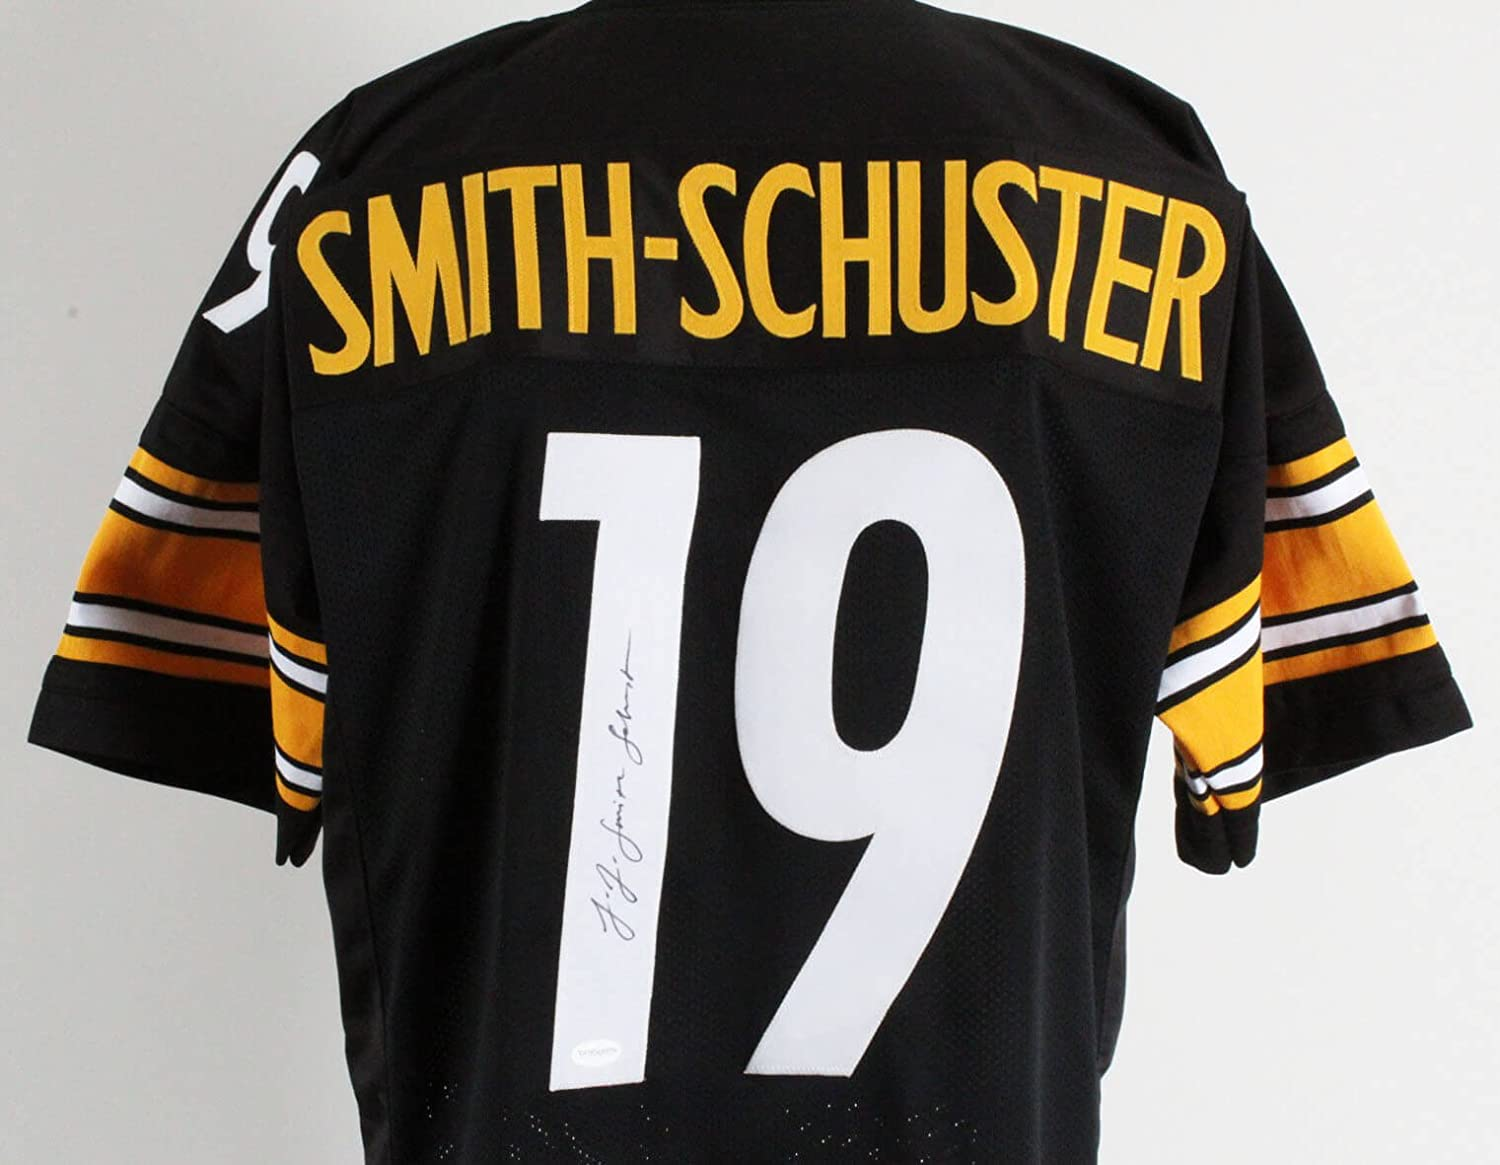 competitive price 6699c 69391 JuJu Smith-Schuster Signed Jersey Steelers - COA at Amazon's ...